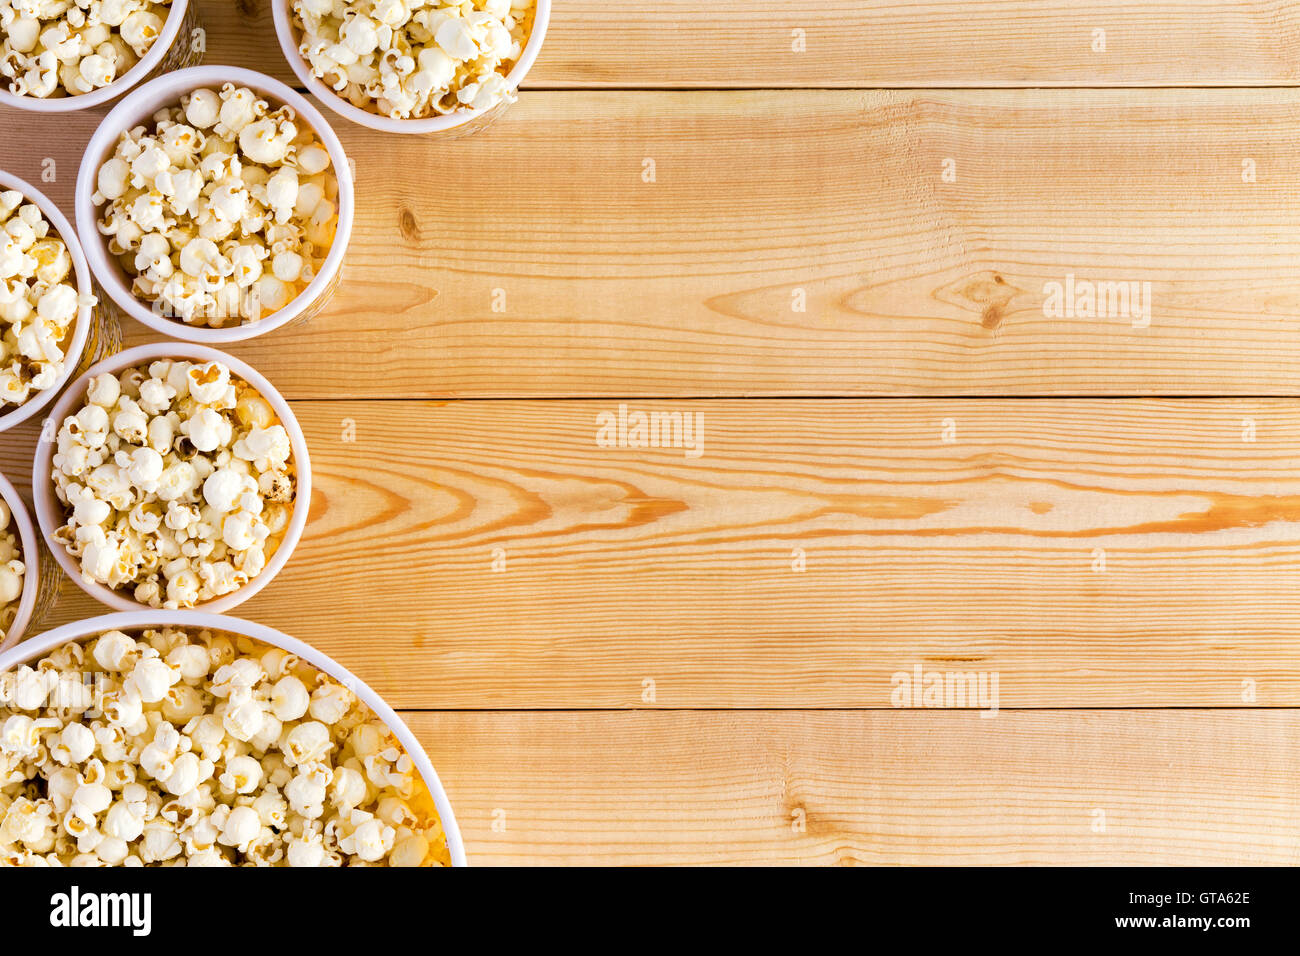 Movies background with various sized full popcorn bowls on table from top down perspective - Stock Image